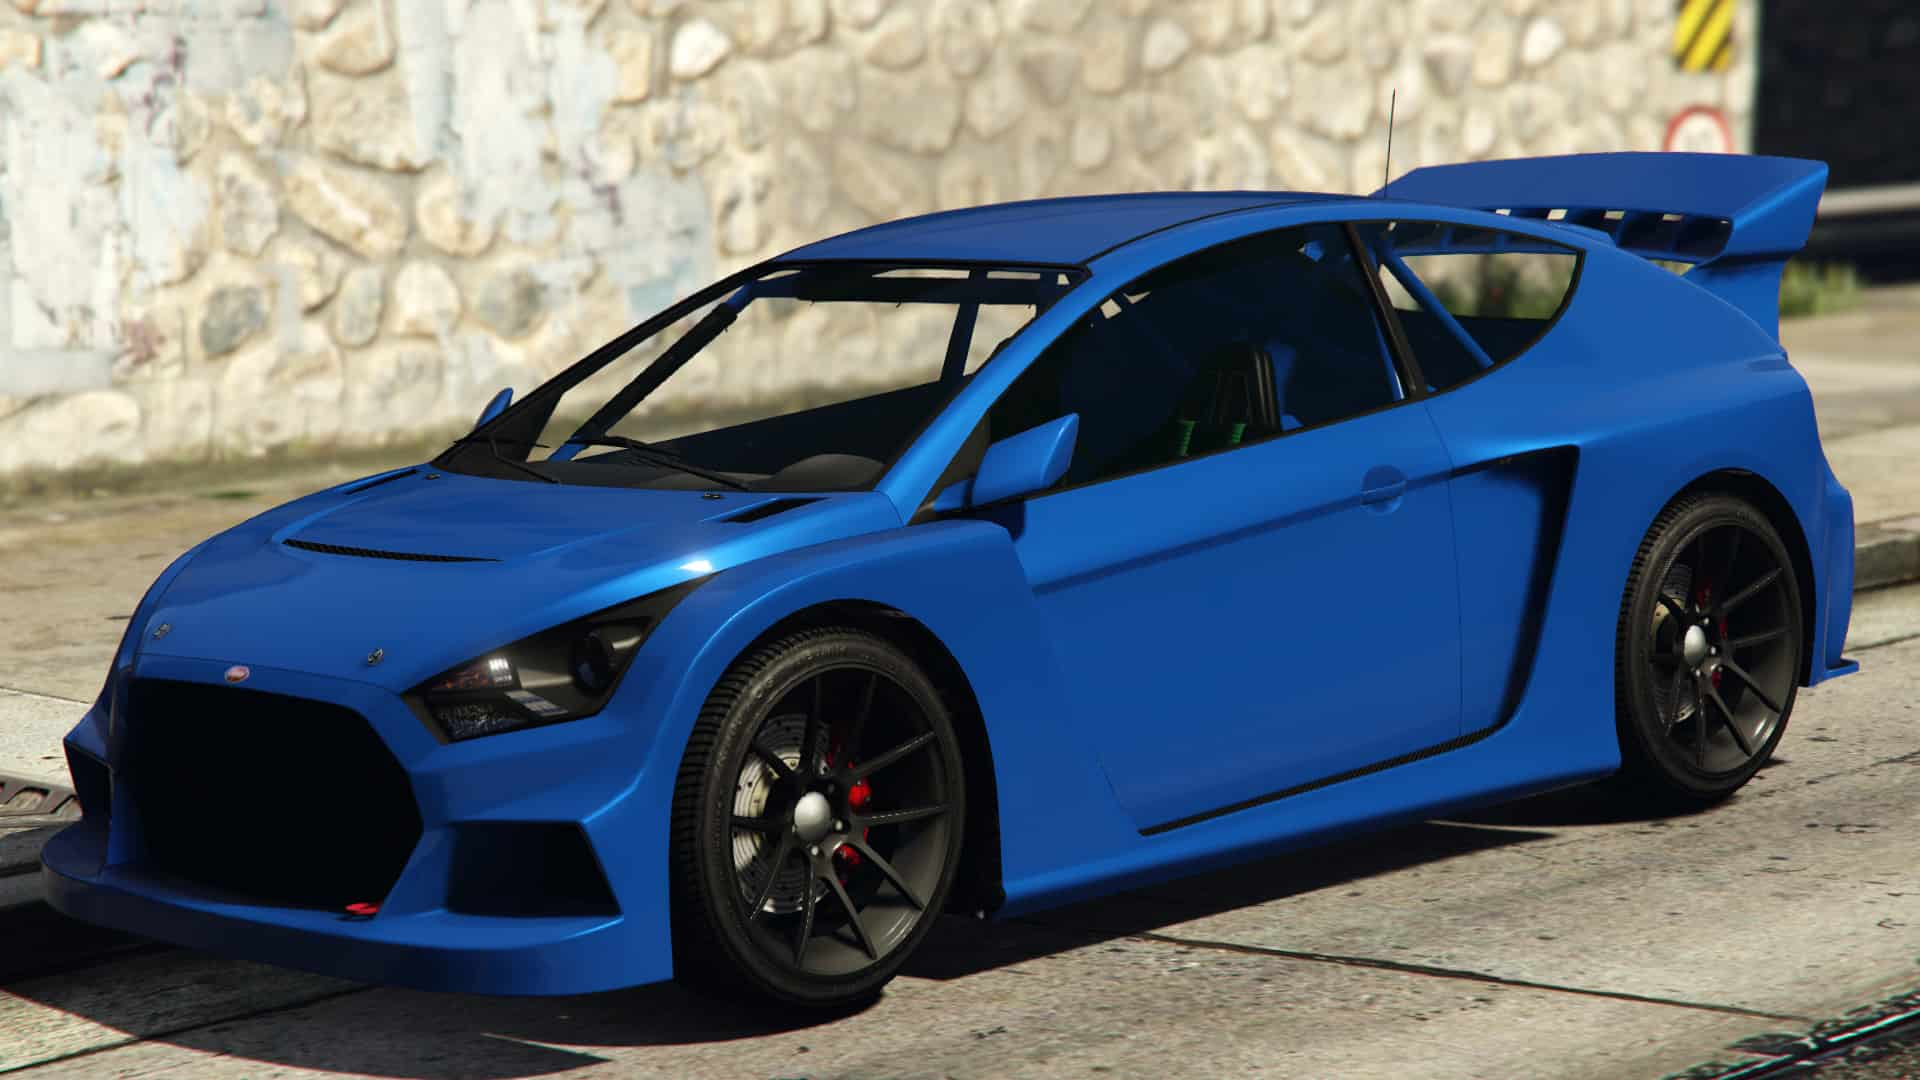 GTA Online Gets 3 New Vehicles And New Mode - GTA BOOM